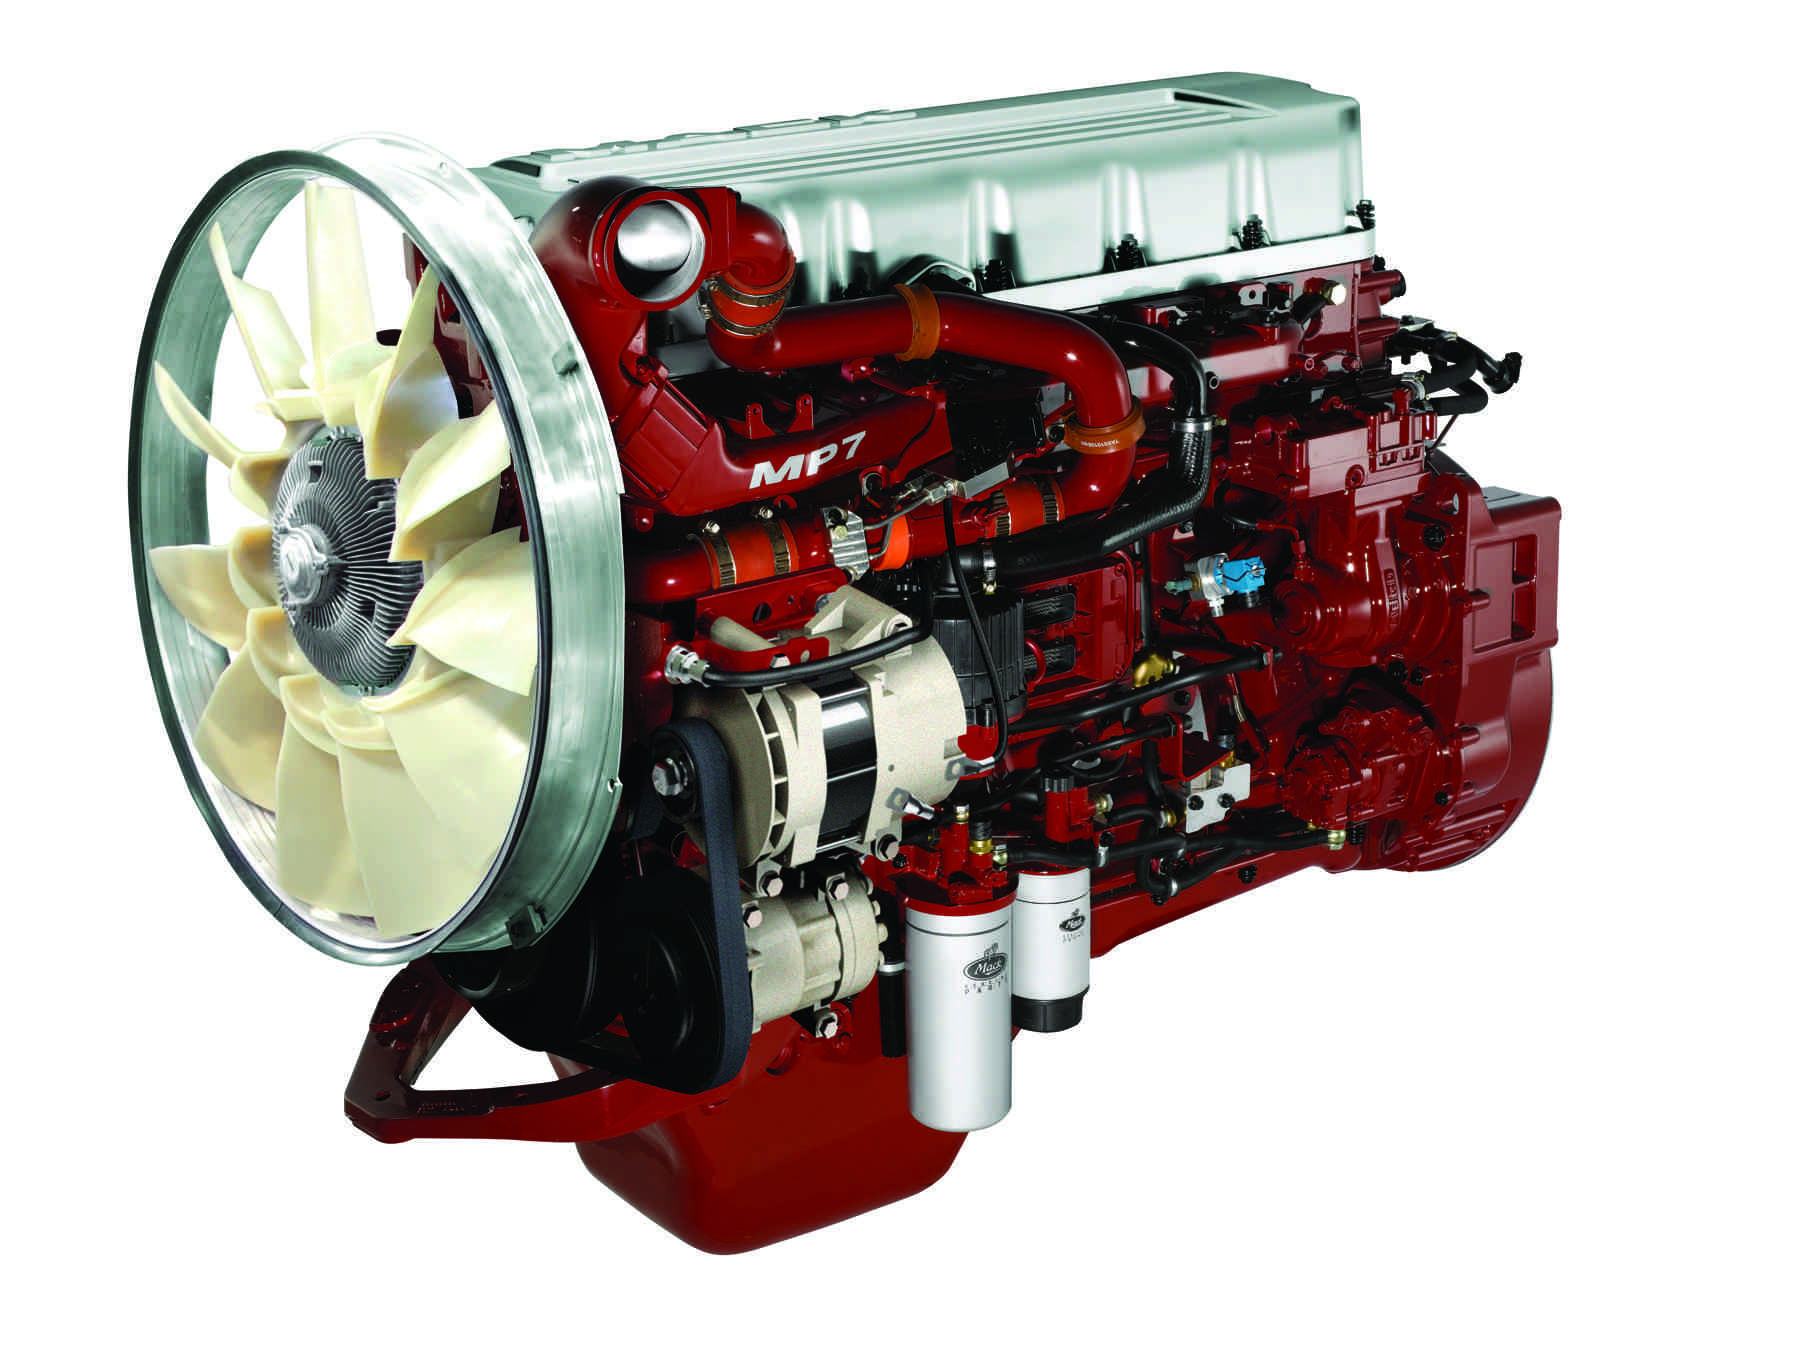 Mack announces new 405-hp MP7 engine